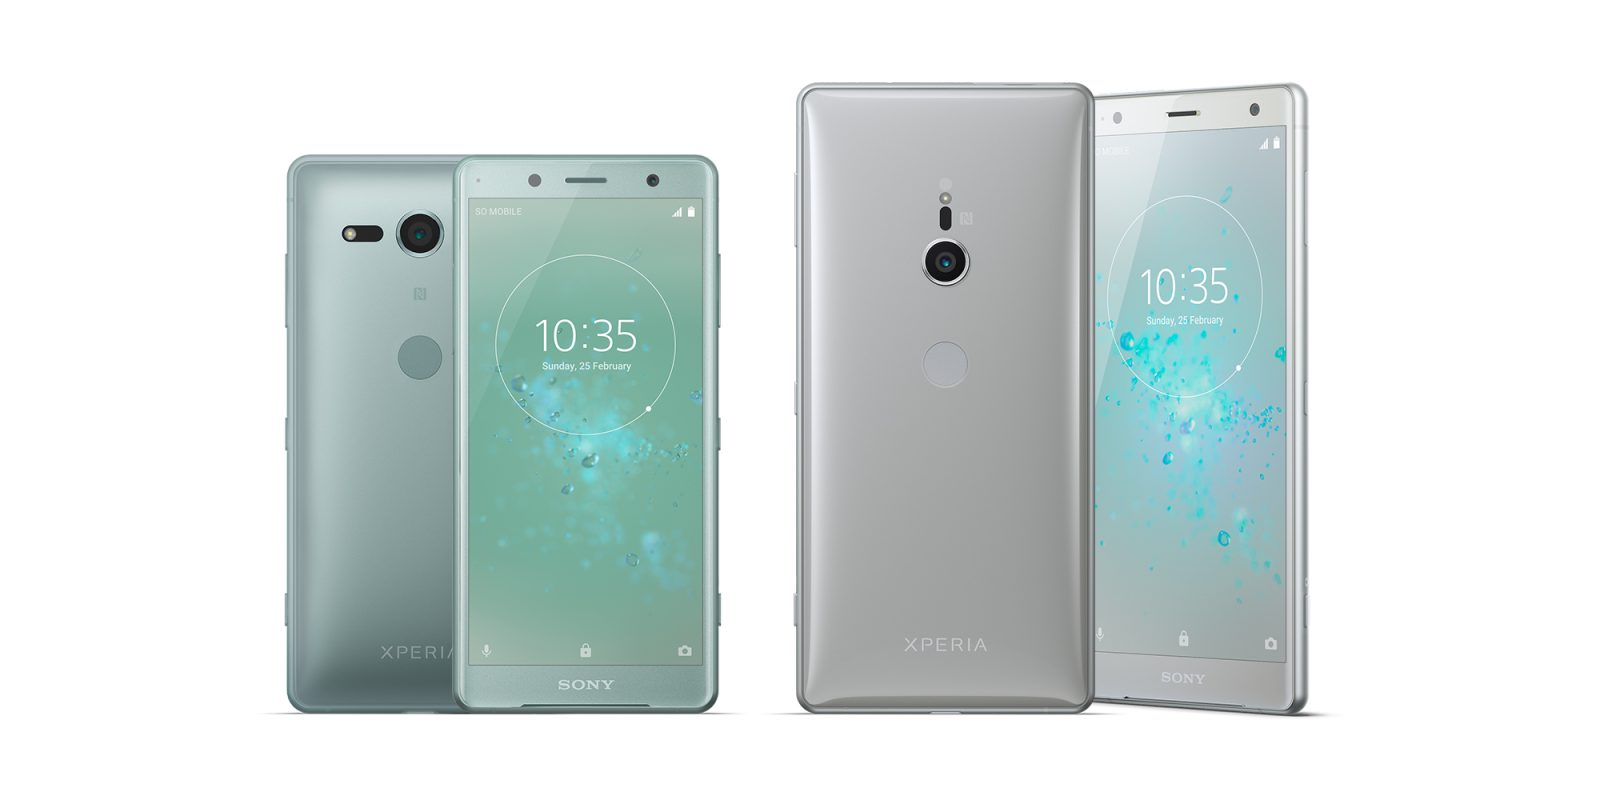 Test: Xperia XZ2 and XZ2 Compact